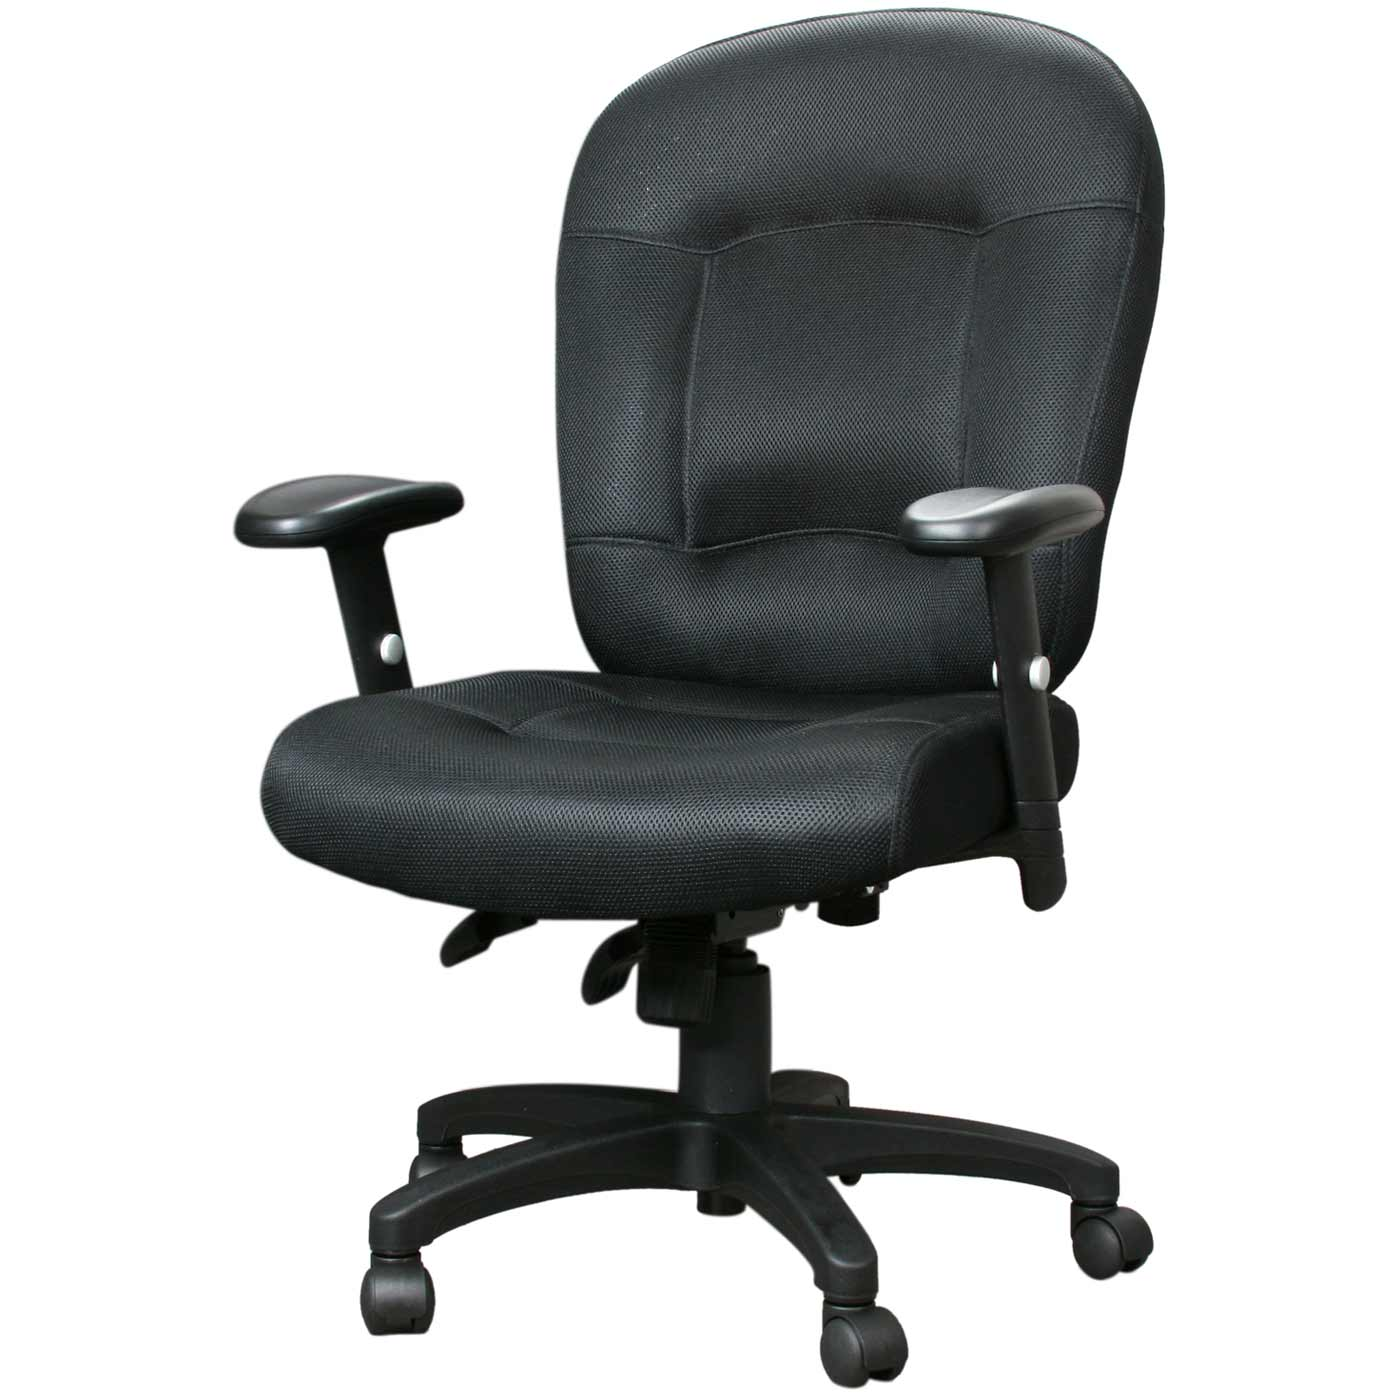 black executive ergonomic chair with armrest